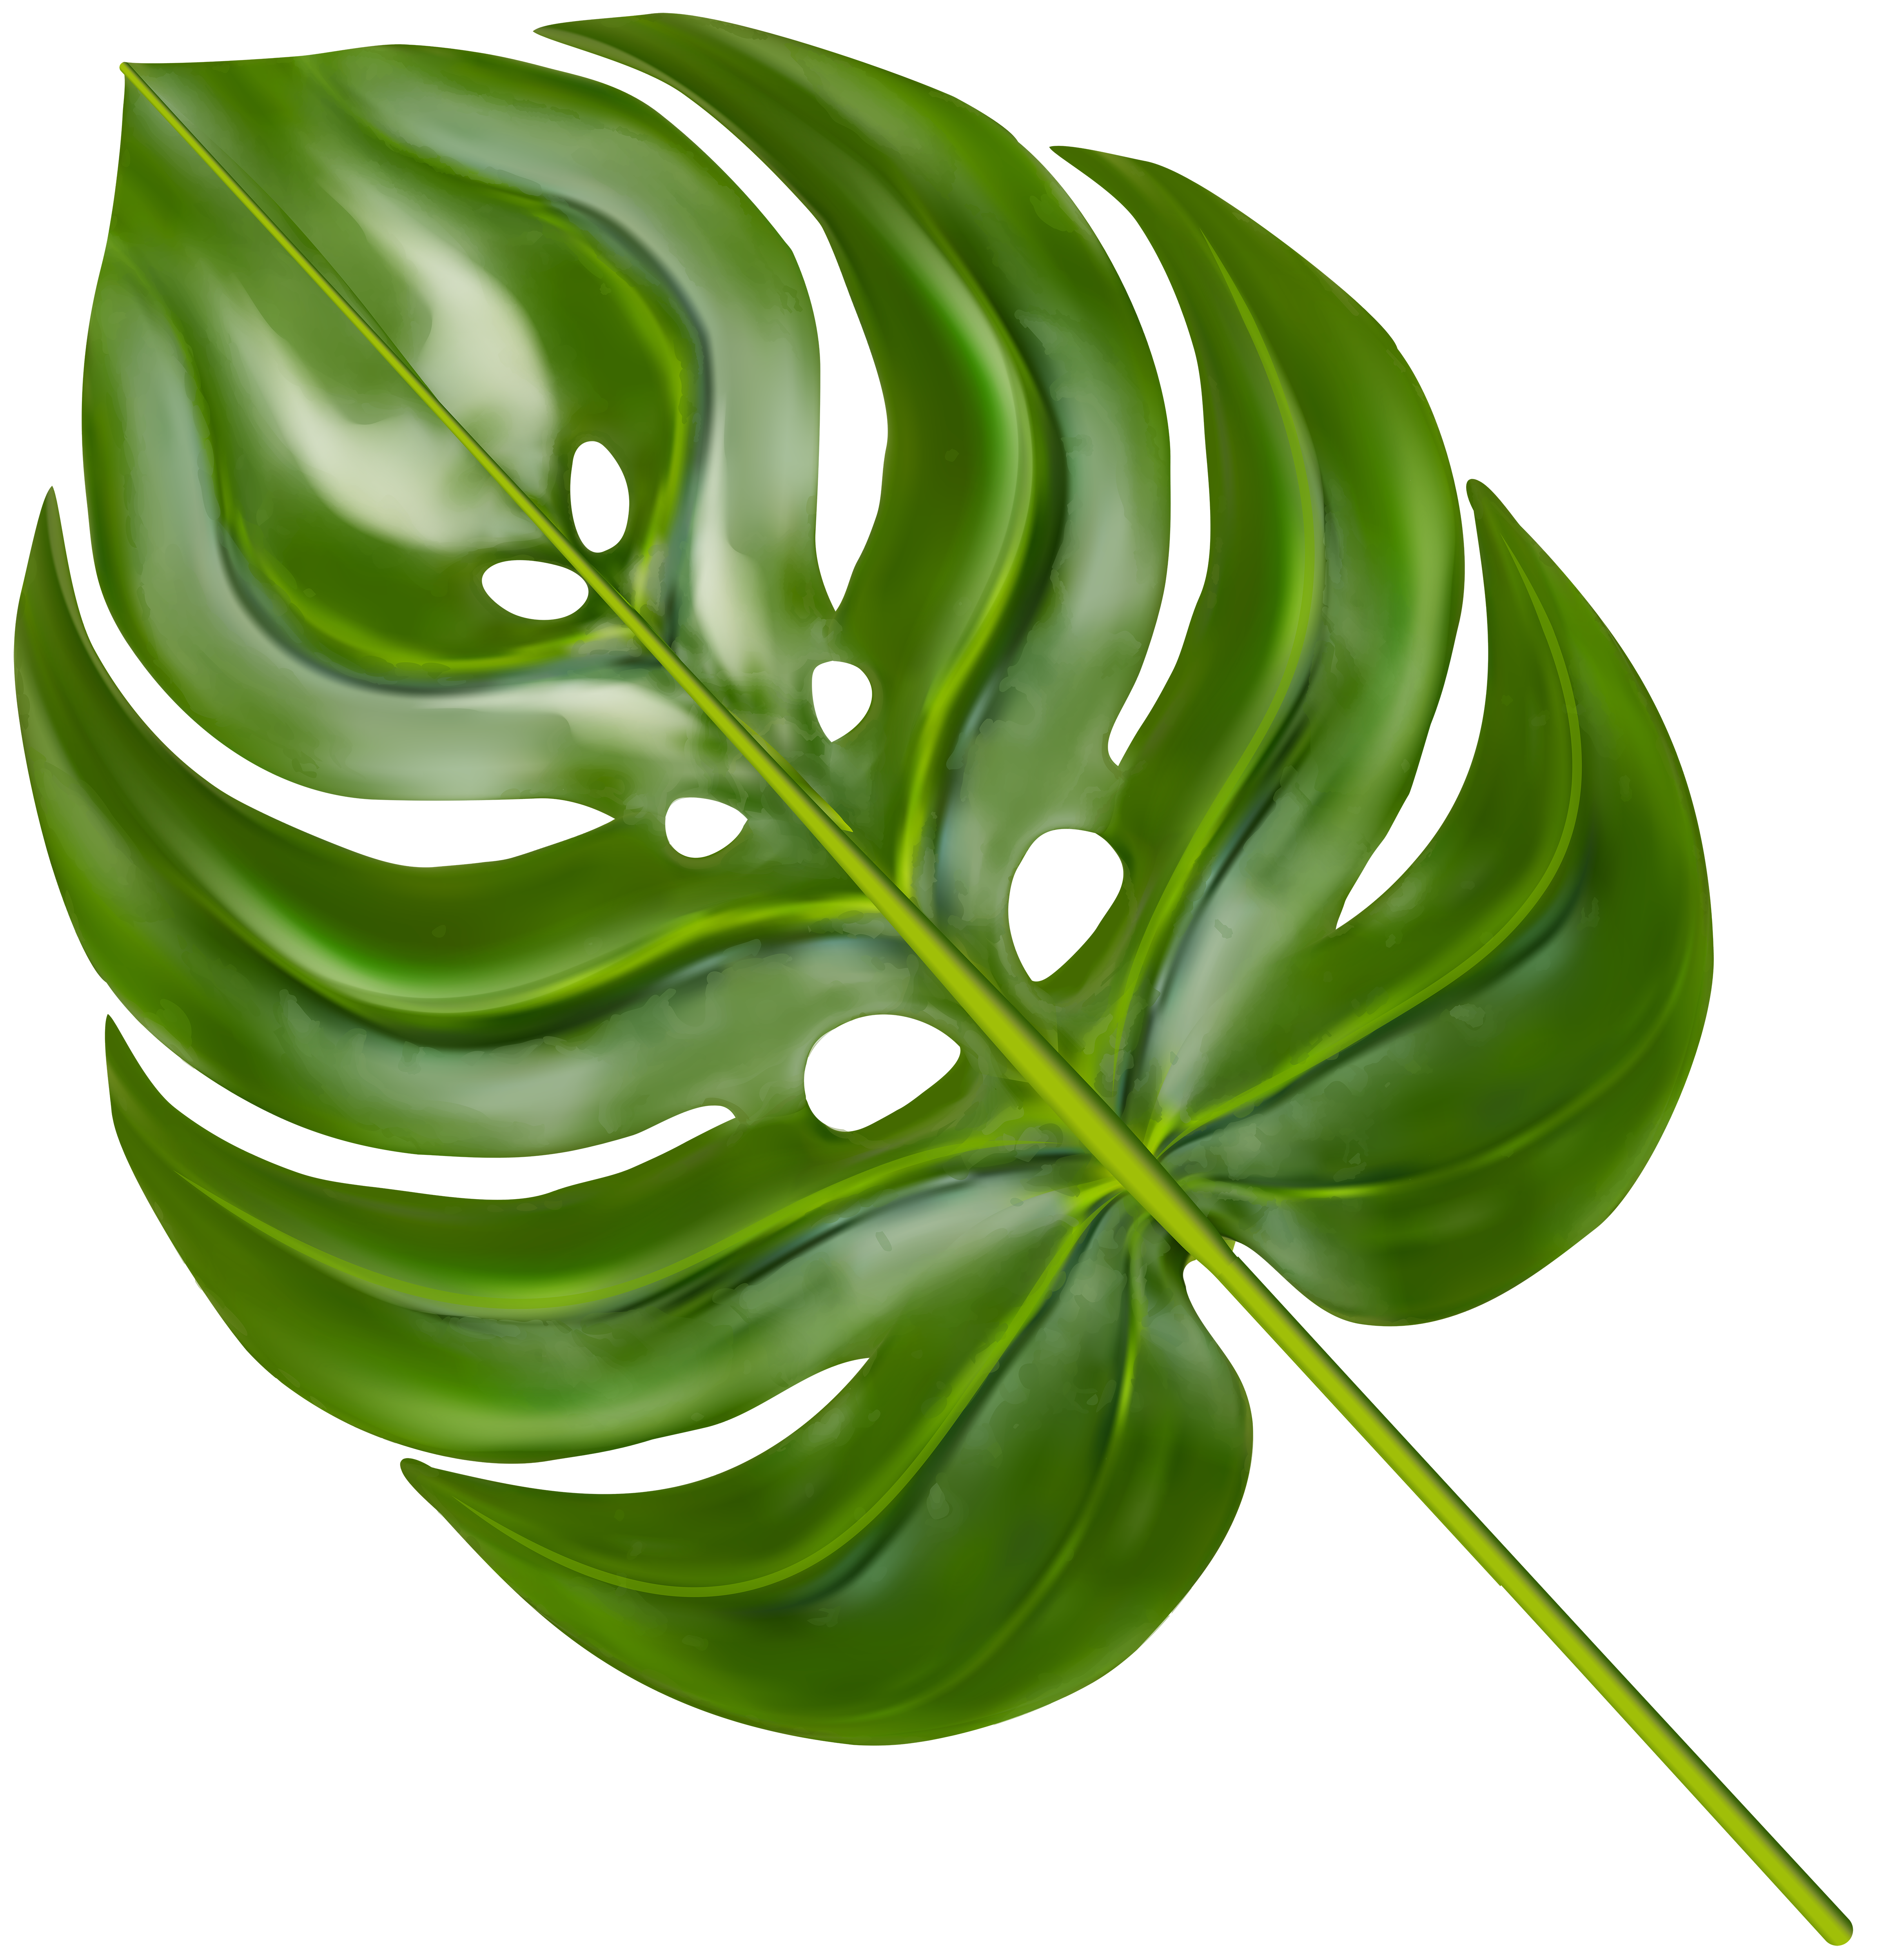 Palm clipart green branch. Decorative transparent image gallery